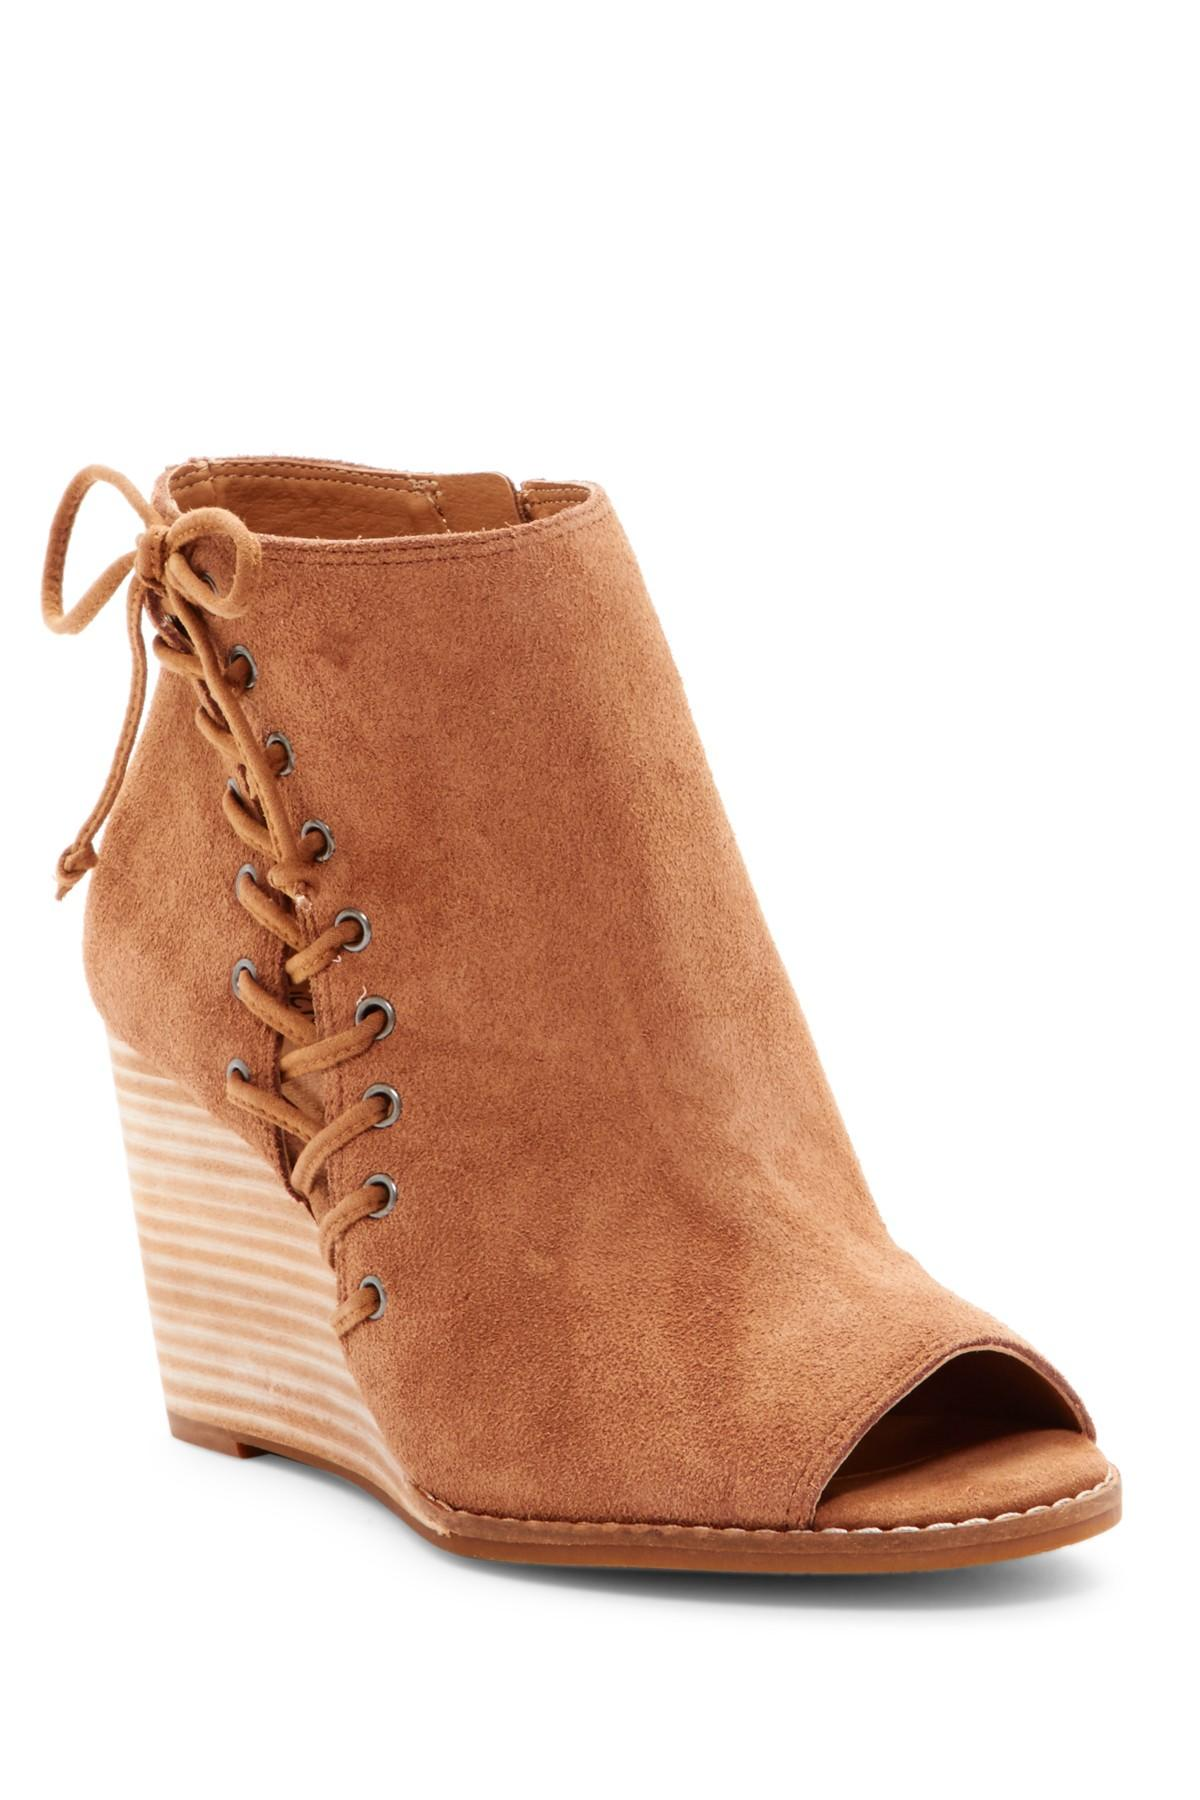 Lucky Brand Side Zip Leather Boots